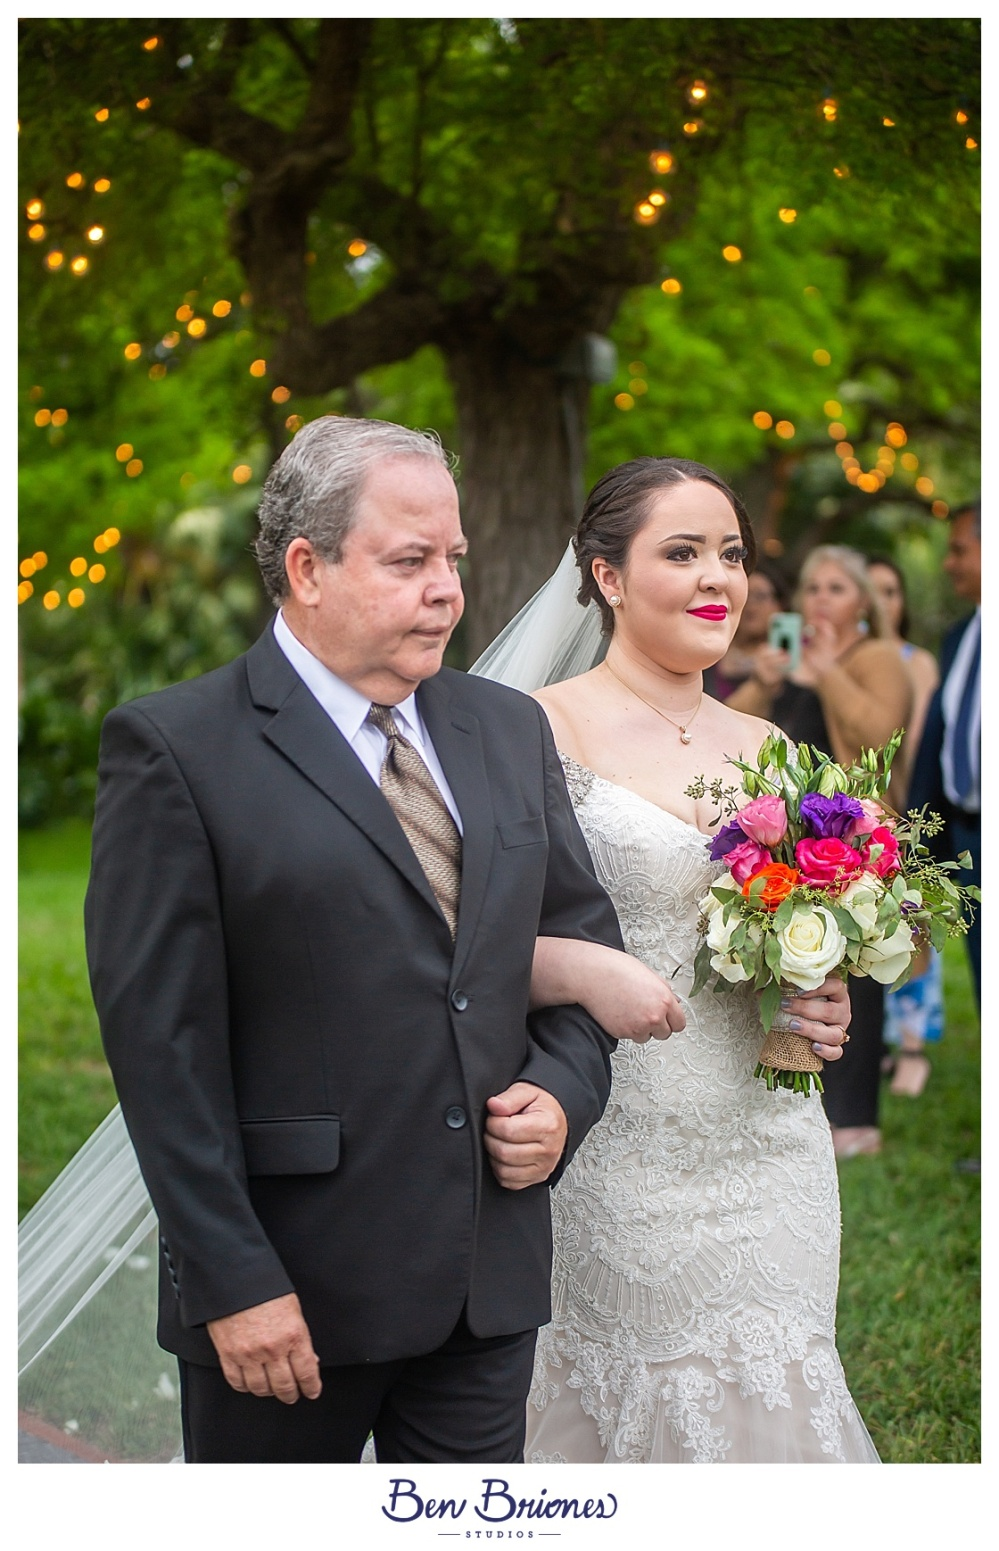 03.12.19_BLOG_Adriana Carlos Wedding_BBP-8481